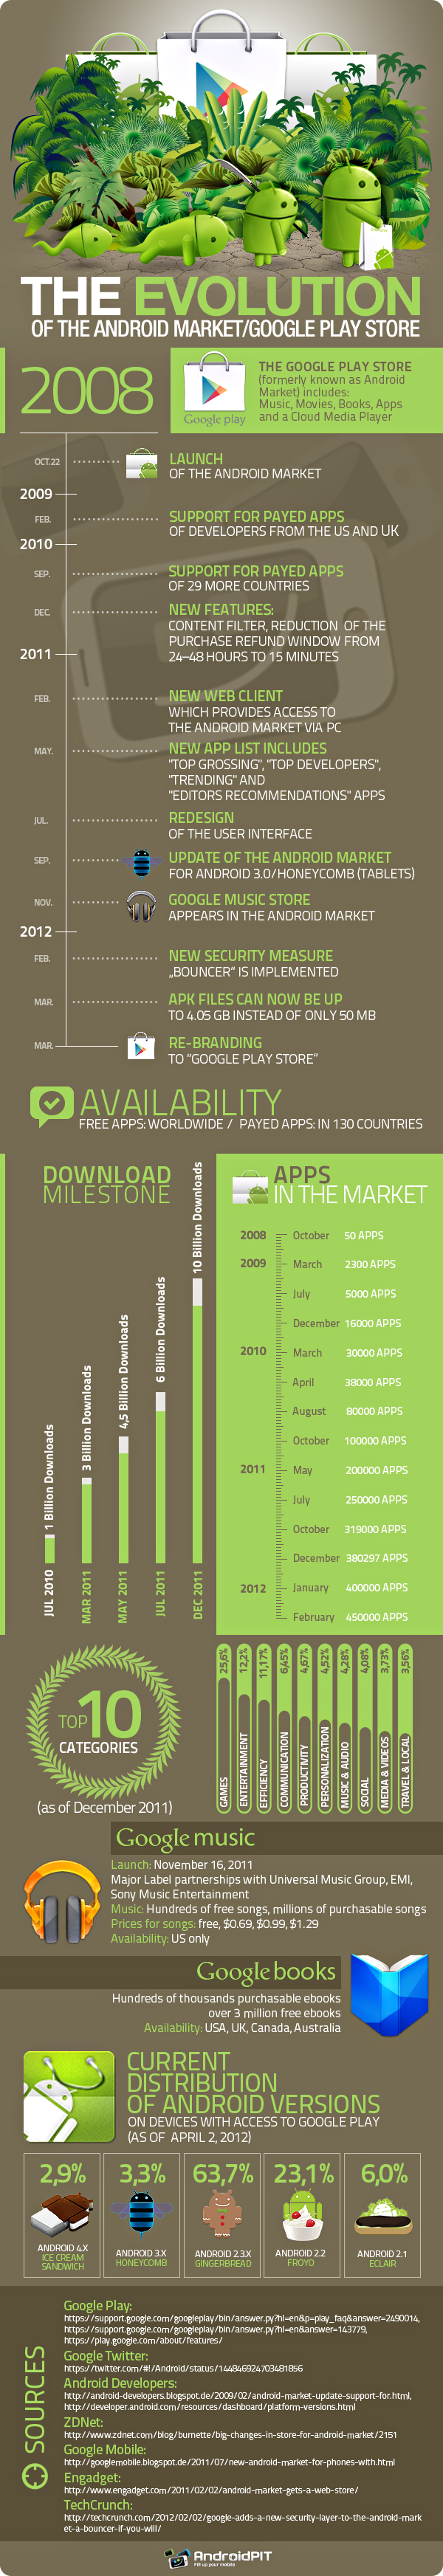 The evolution of the Android Market/Google Play store #infographic